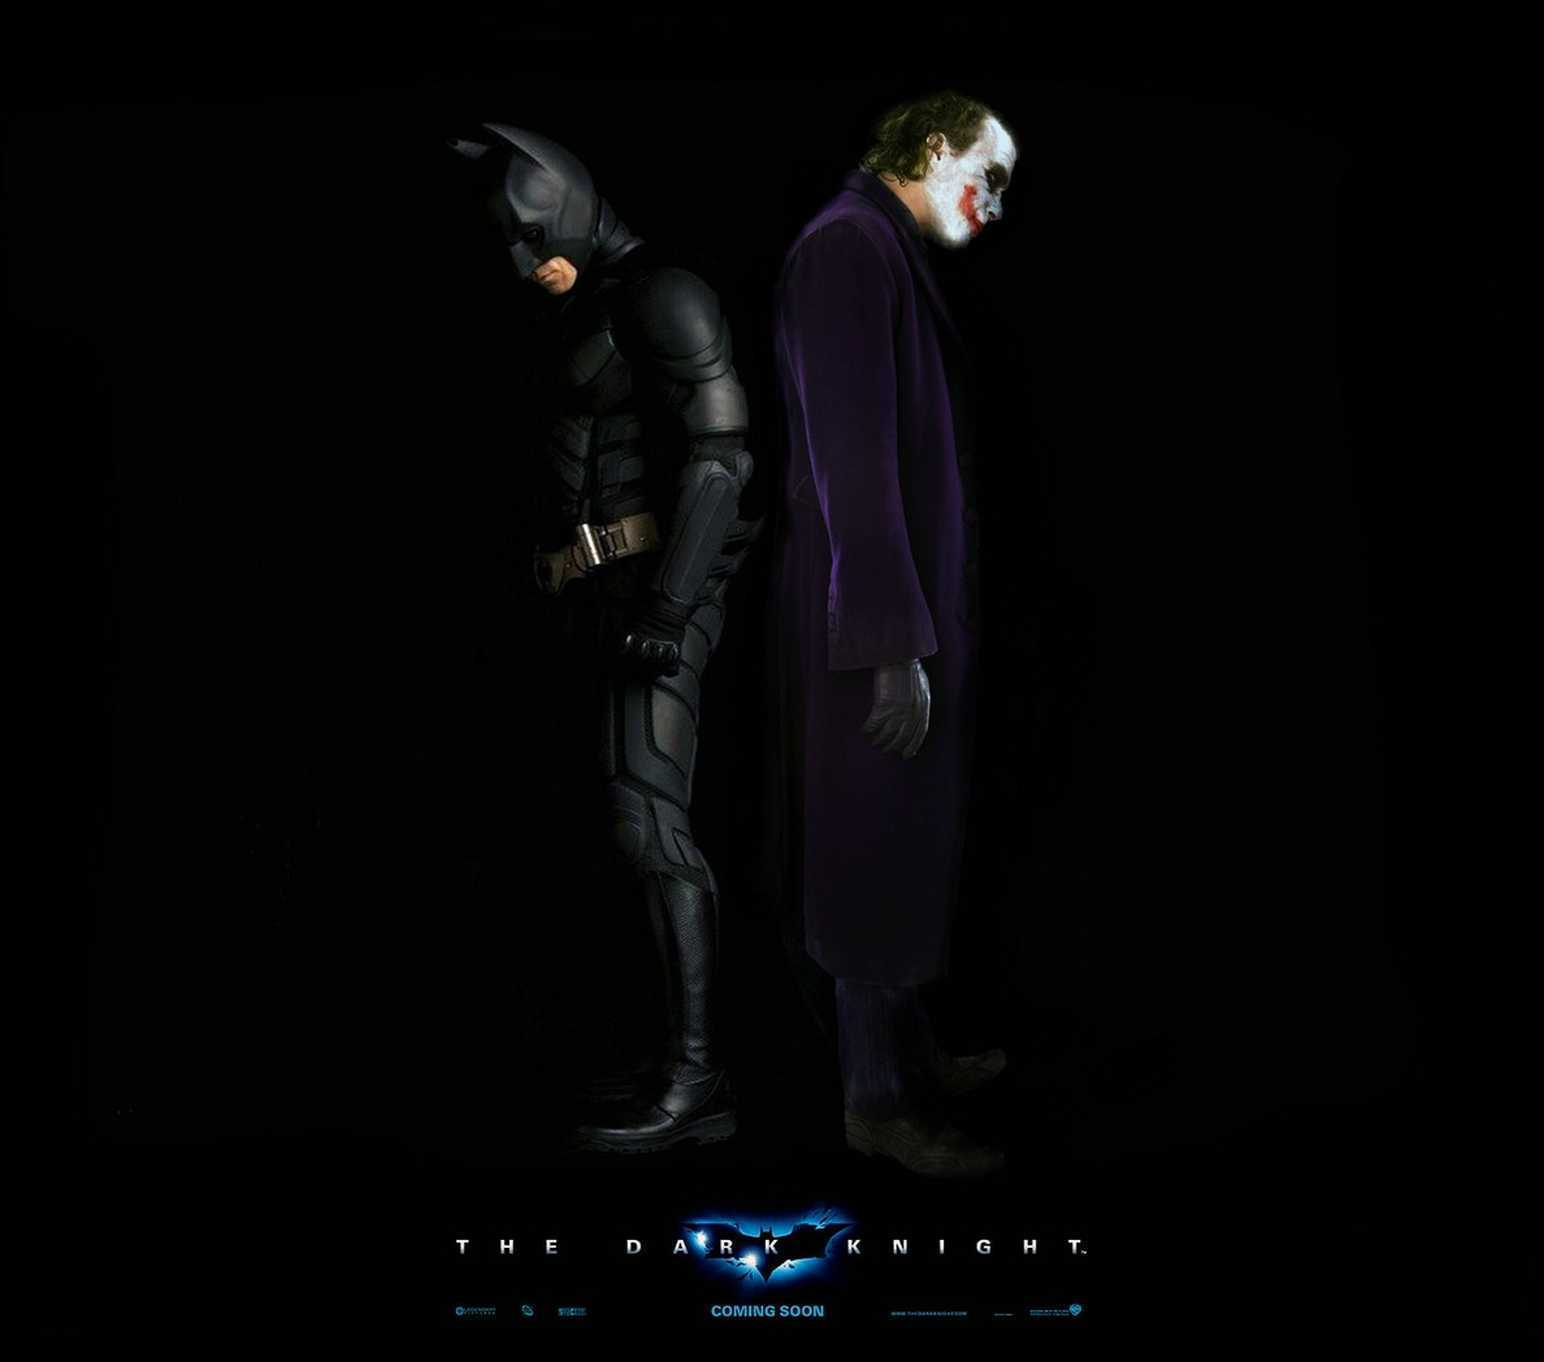 batman joker - The Dark Knight Photo (10912314) - Fanpop